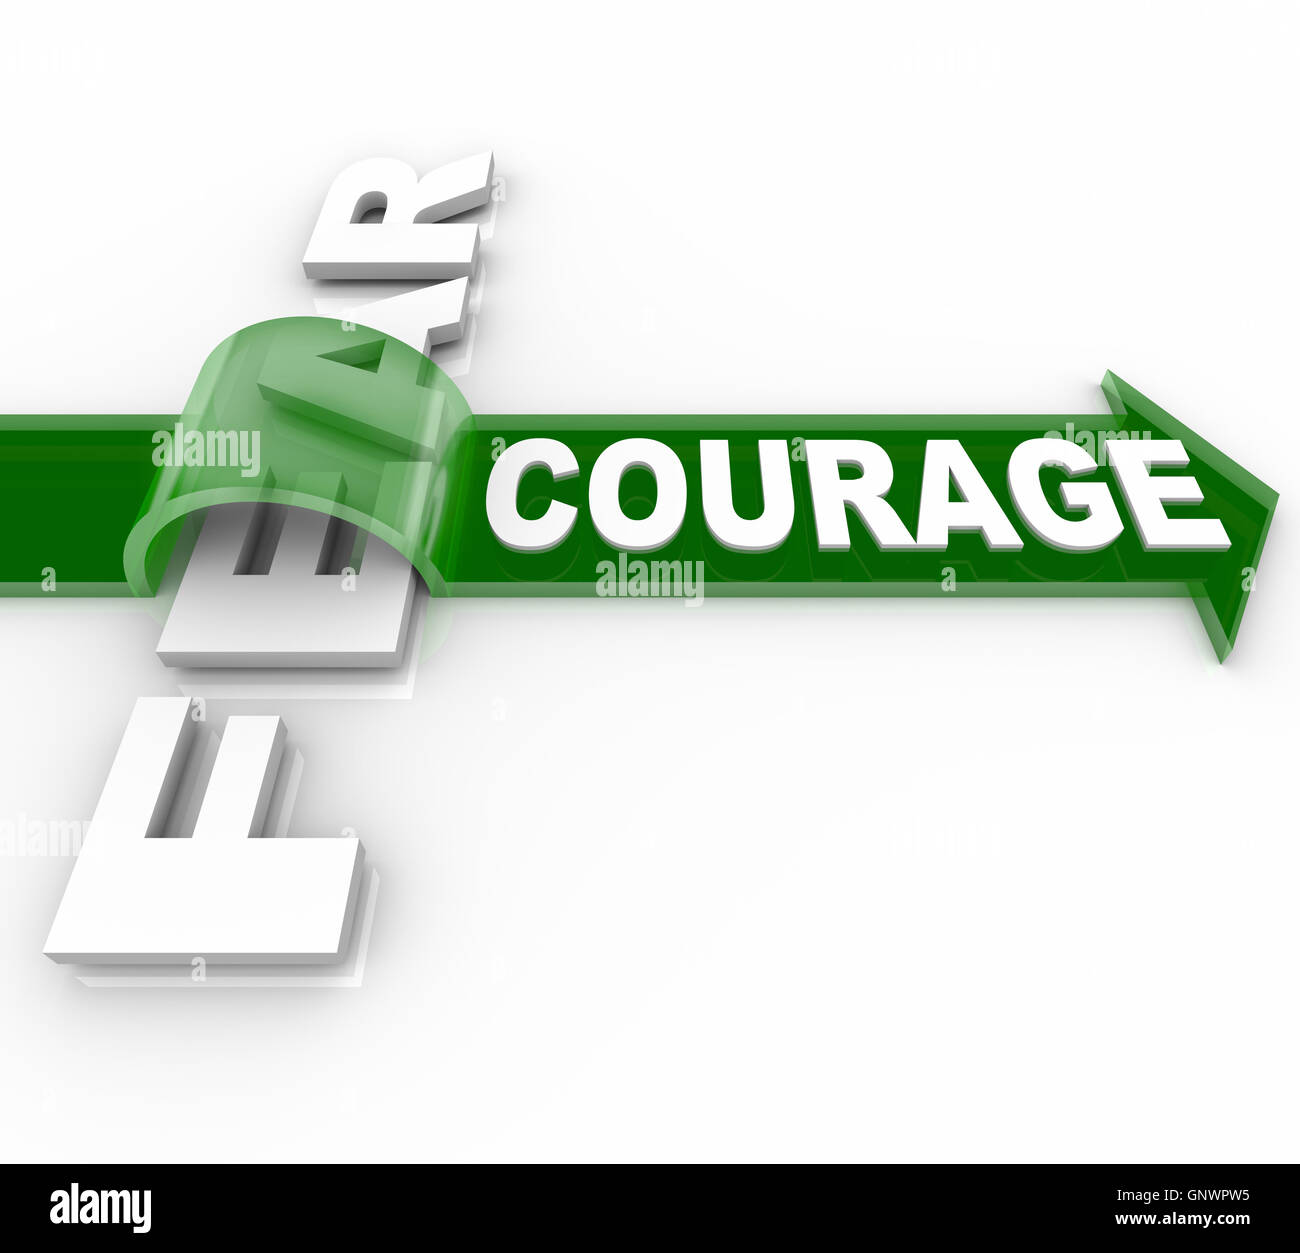 Brave Courage Overcoming Fear Bravery Vs Afraid Stock Photo